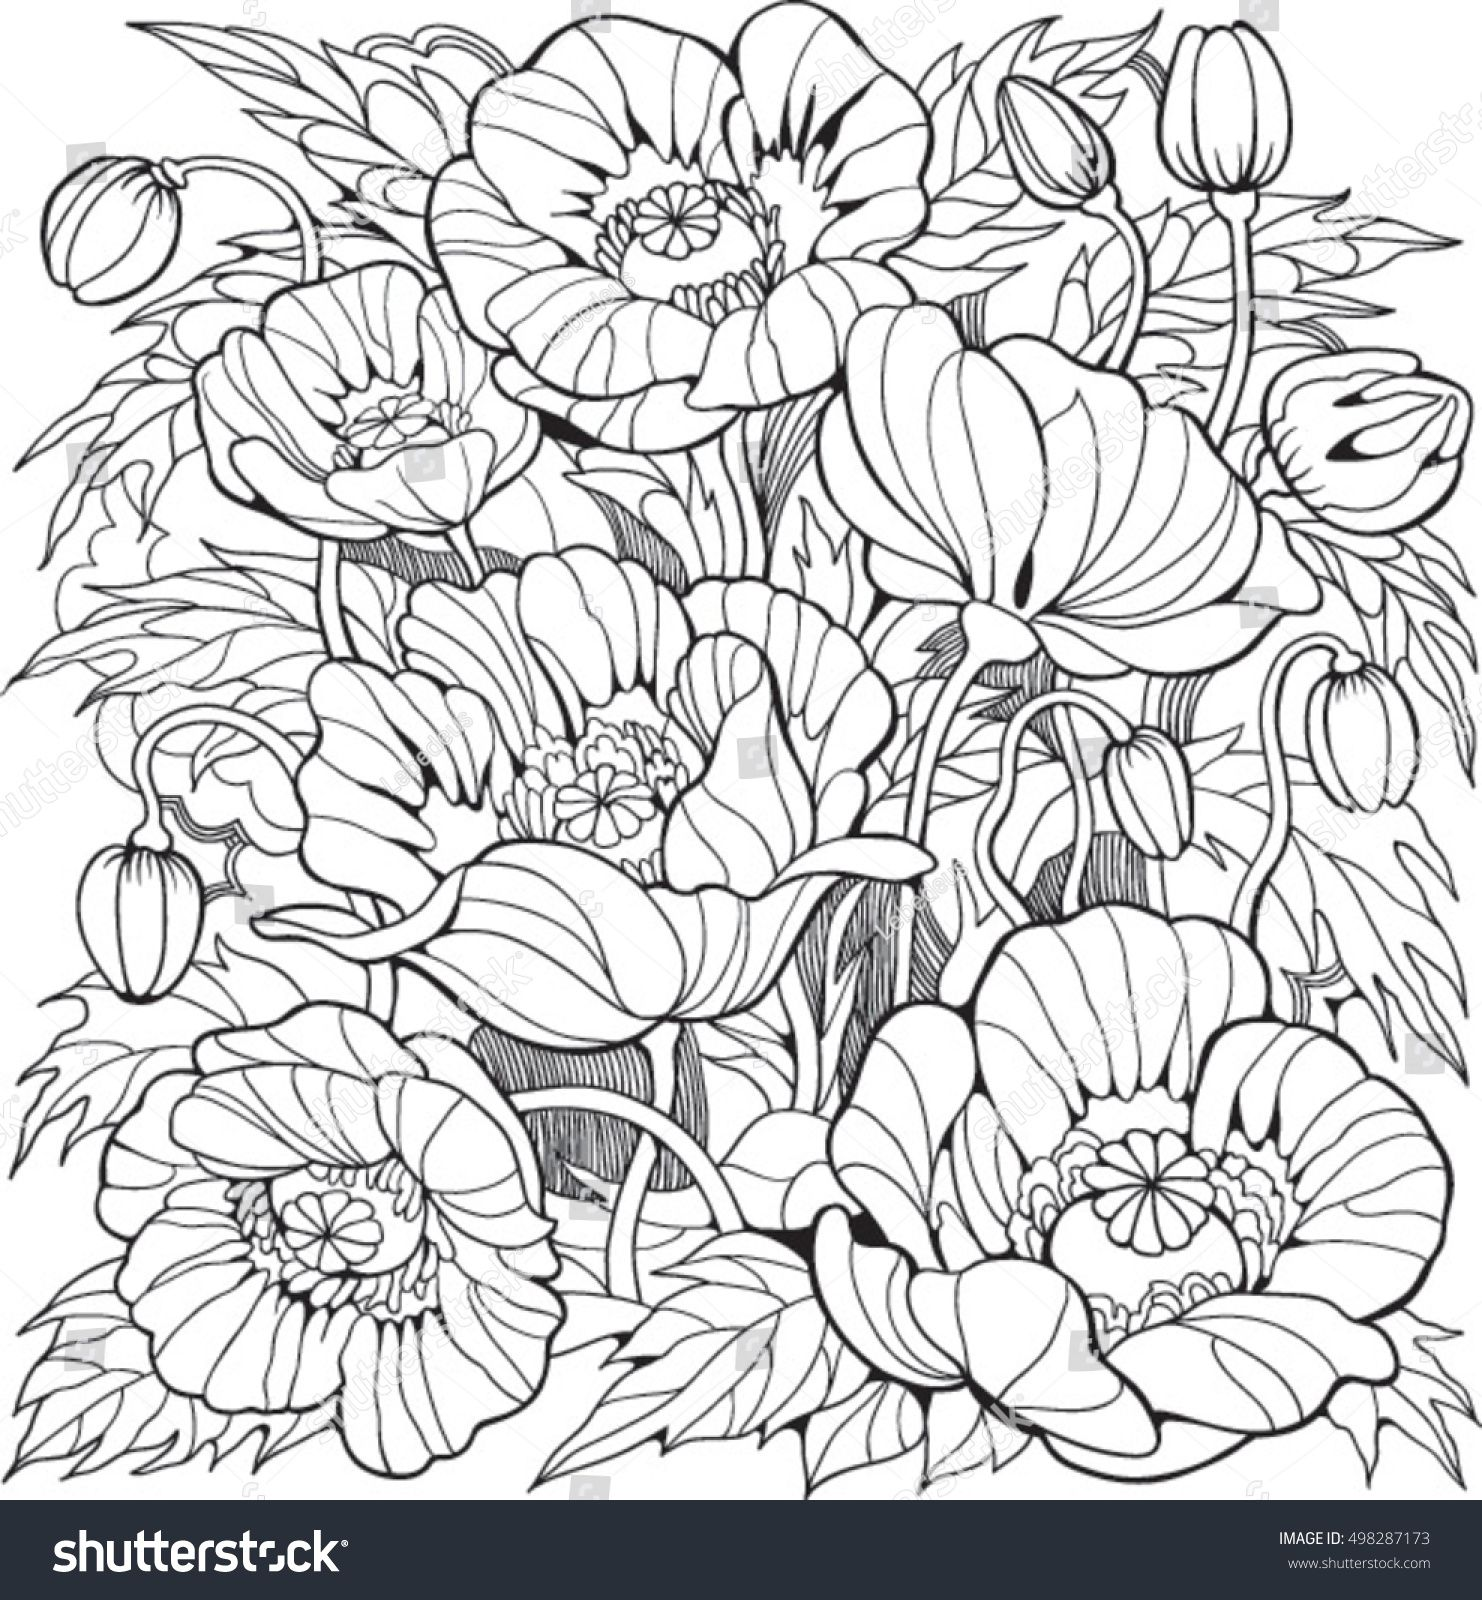 Poppy flowers. Coloring page for adult and older children | Картины ...